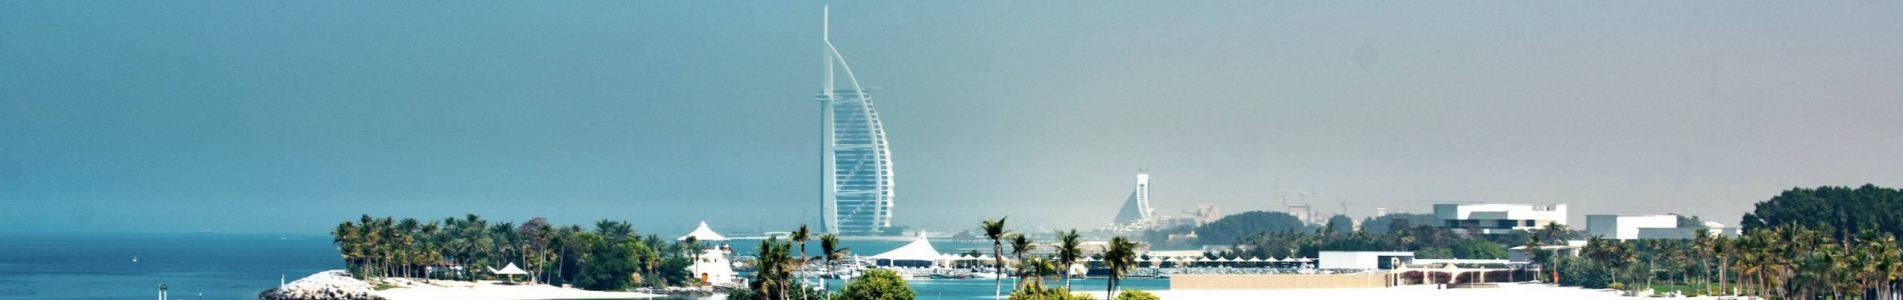 cropped-dubai-header-scaled-1.jpg